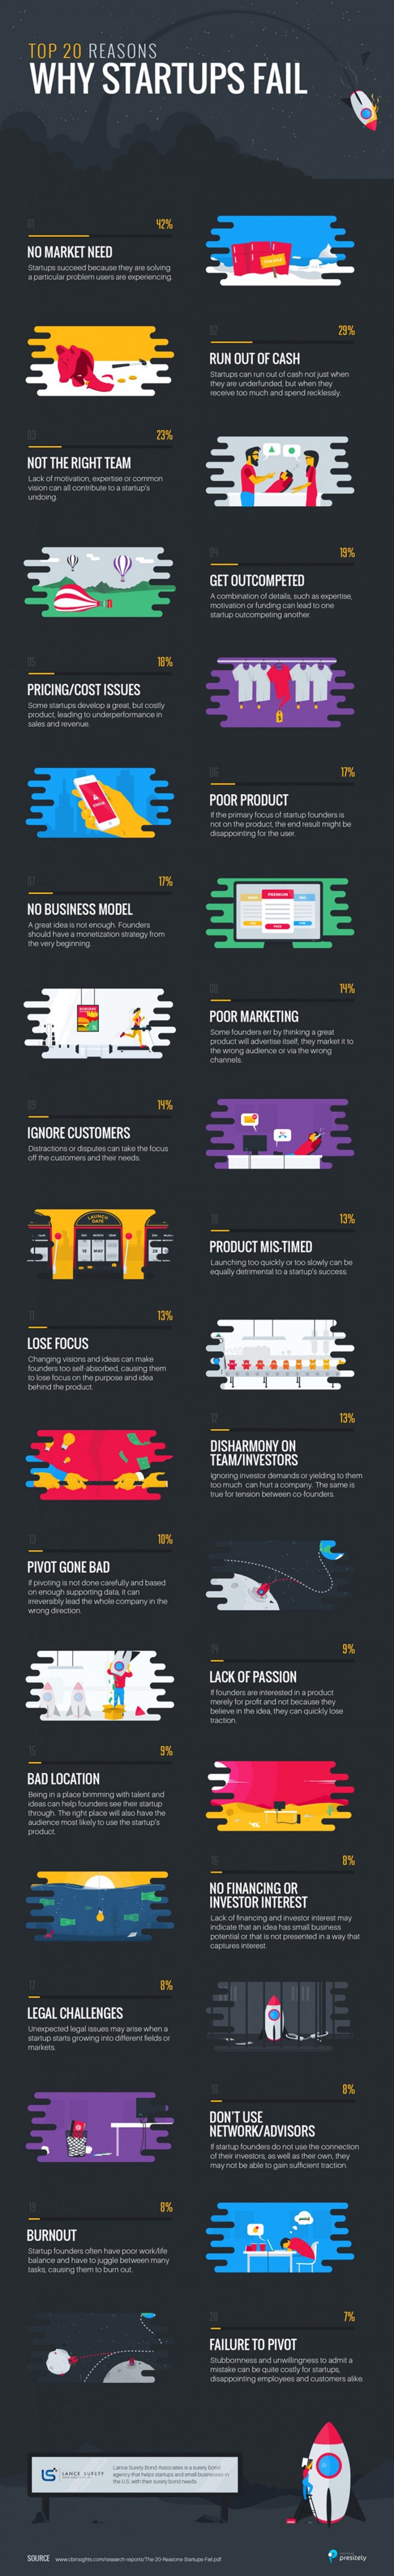 Top 20 Reasons Why Startups Fail Infographic